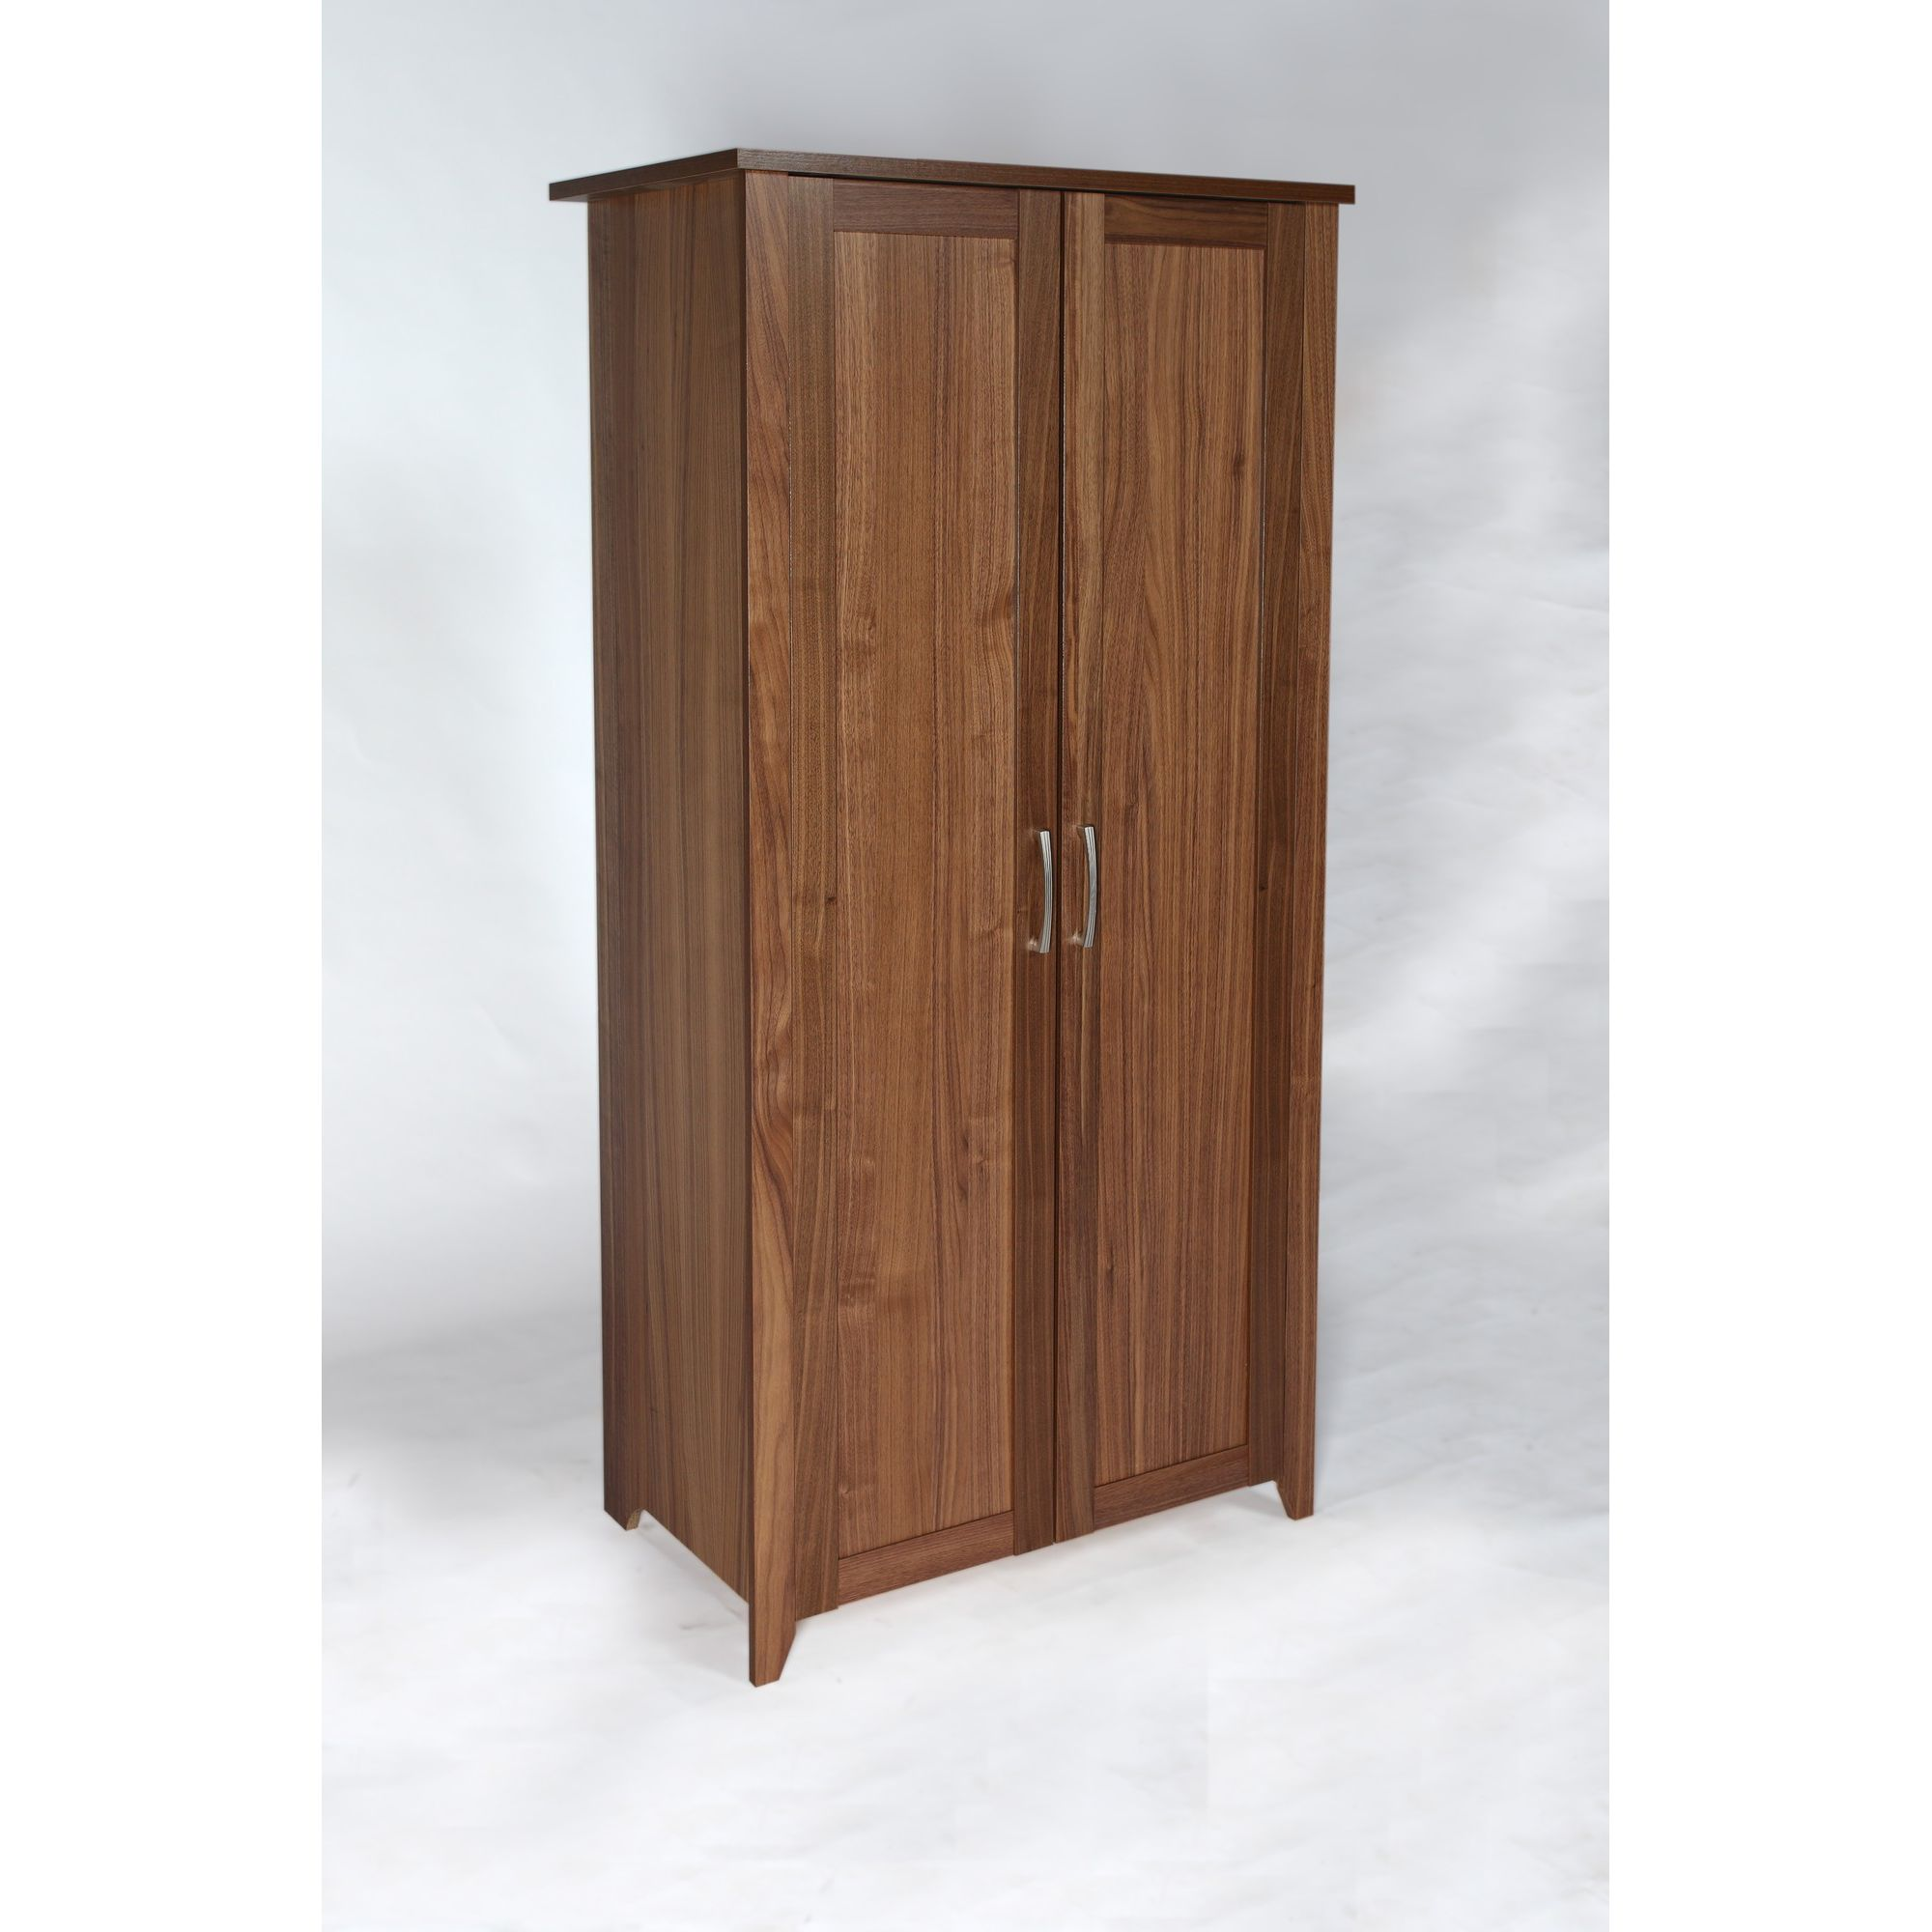 Urbane Designs Tango 2 Door Wardrobe at Tesco Direct